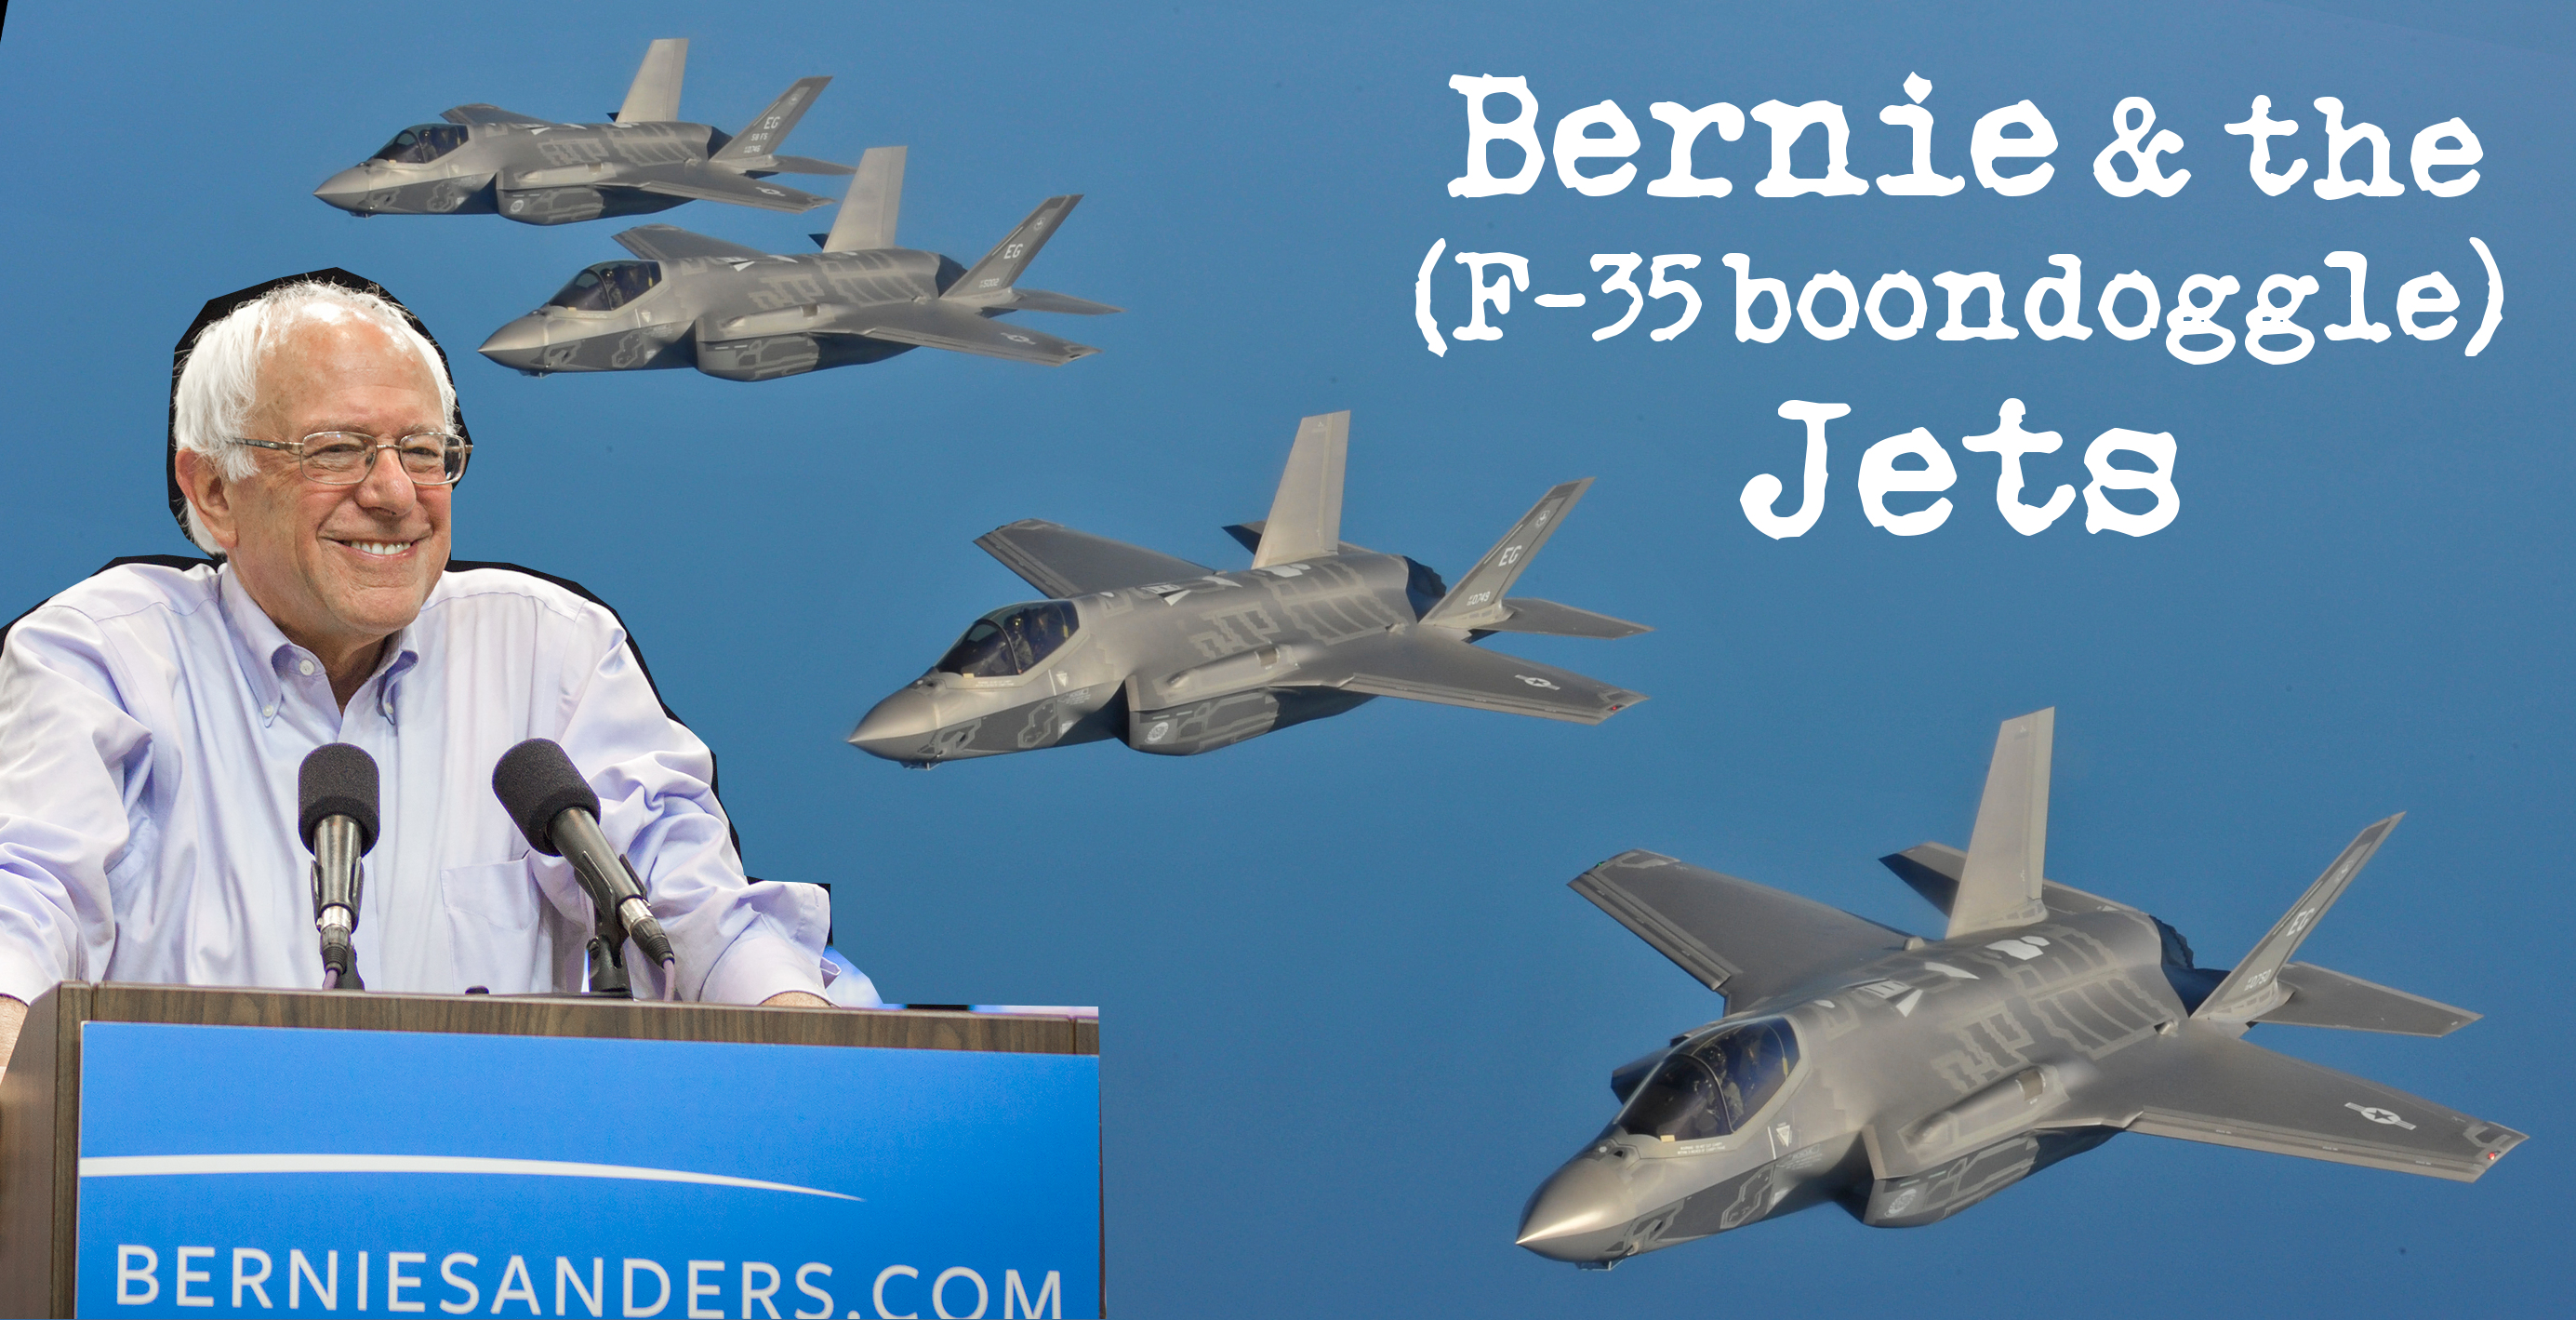 Bernie and the (F-35 boondoggle) Jets